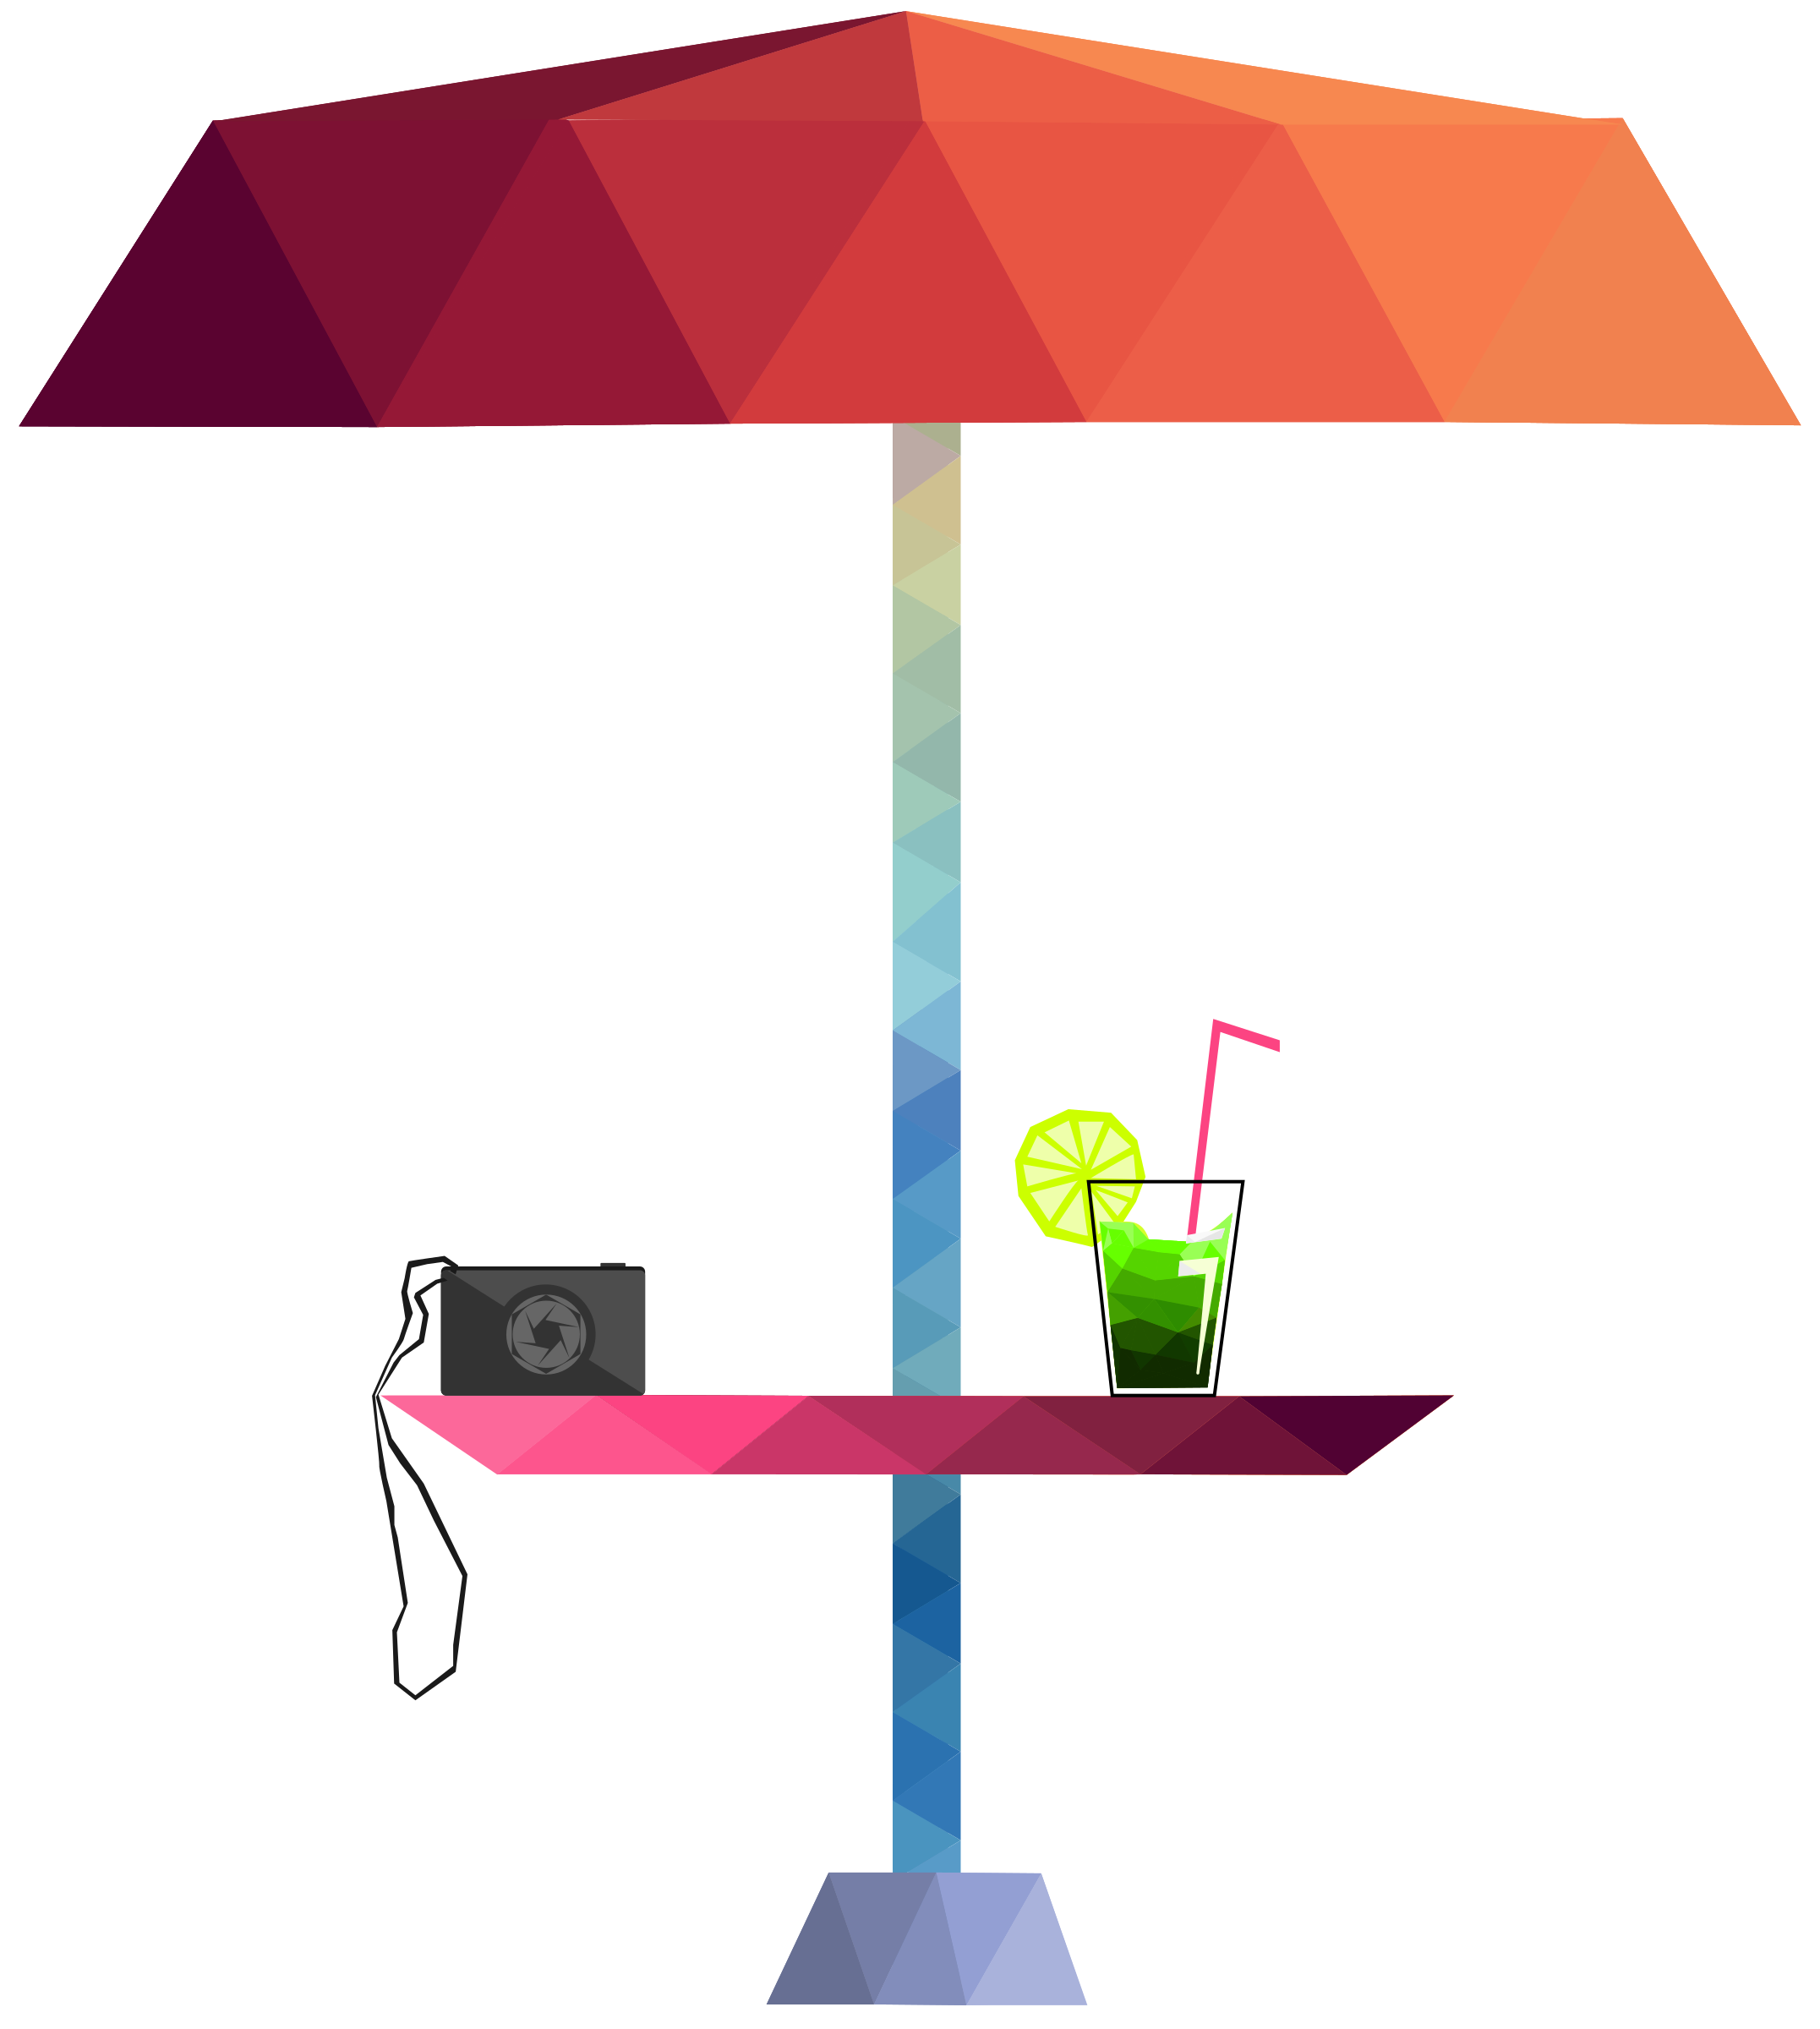 Lowpoly Beach umbrella, Camera and drink by Vexagrafi